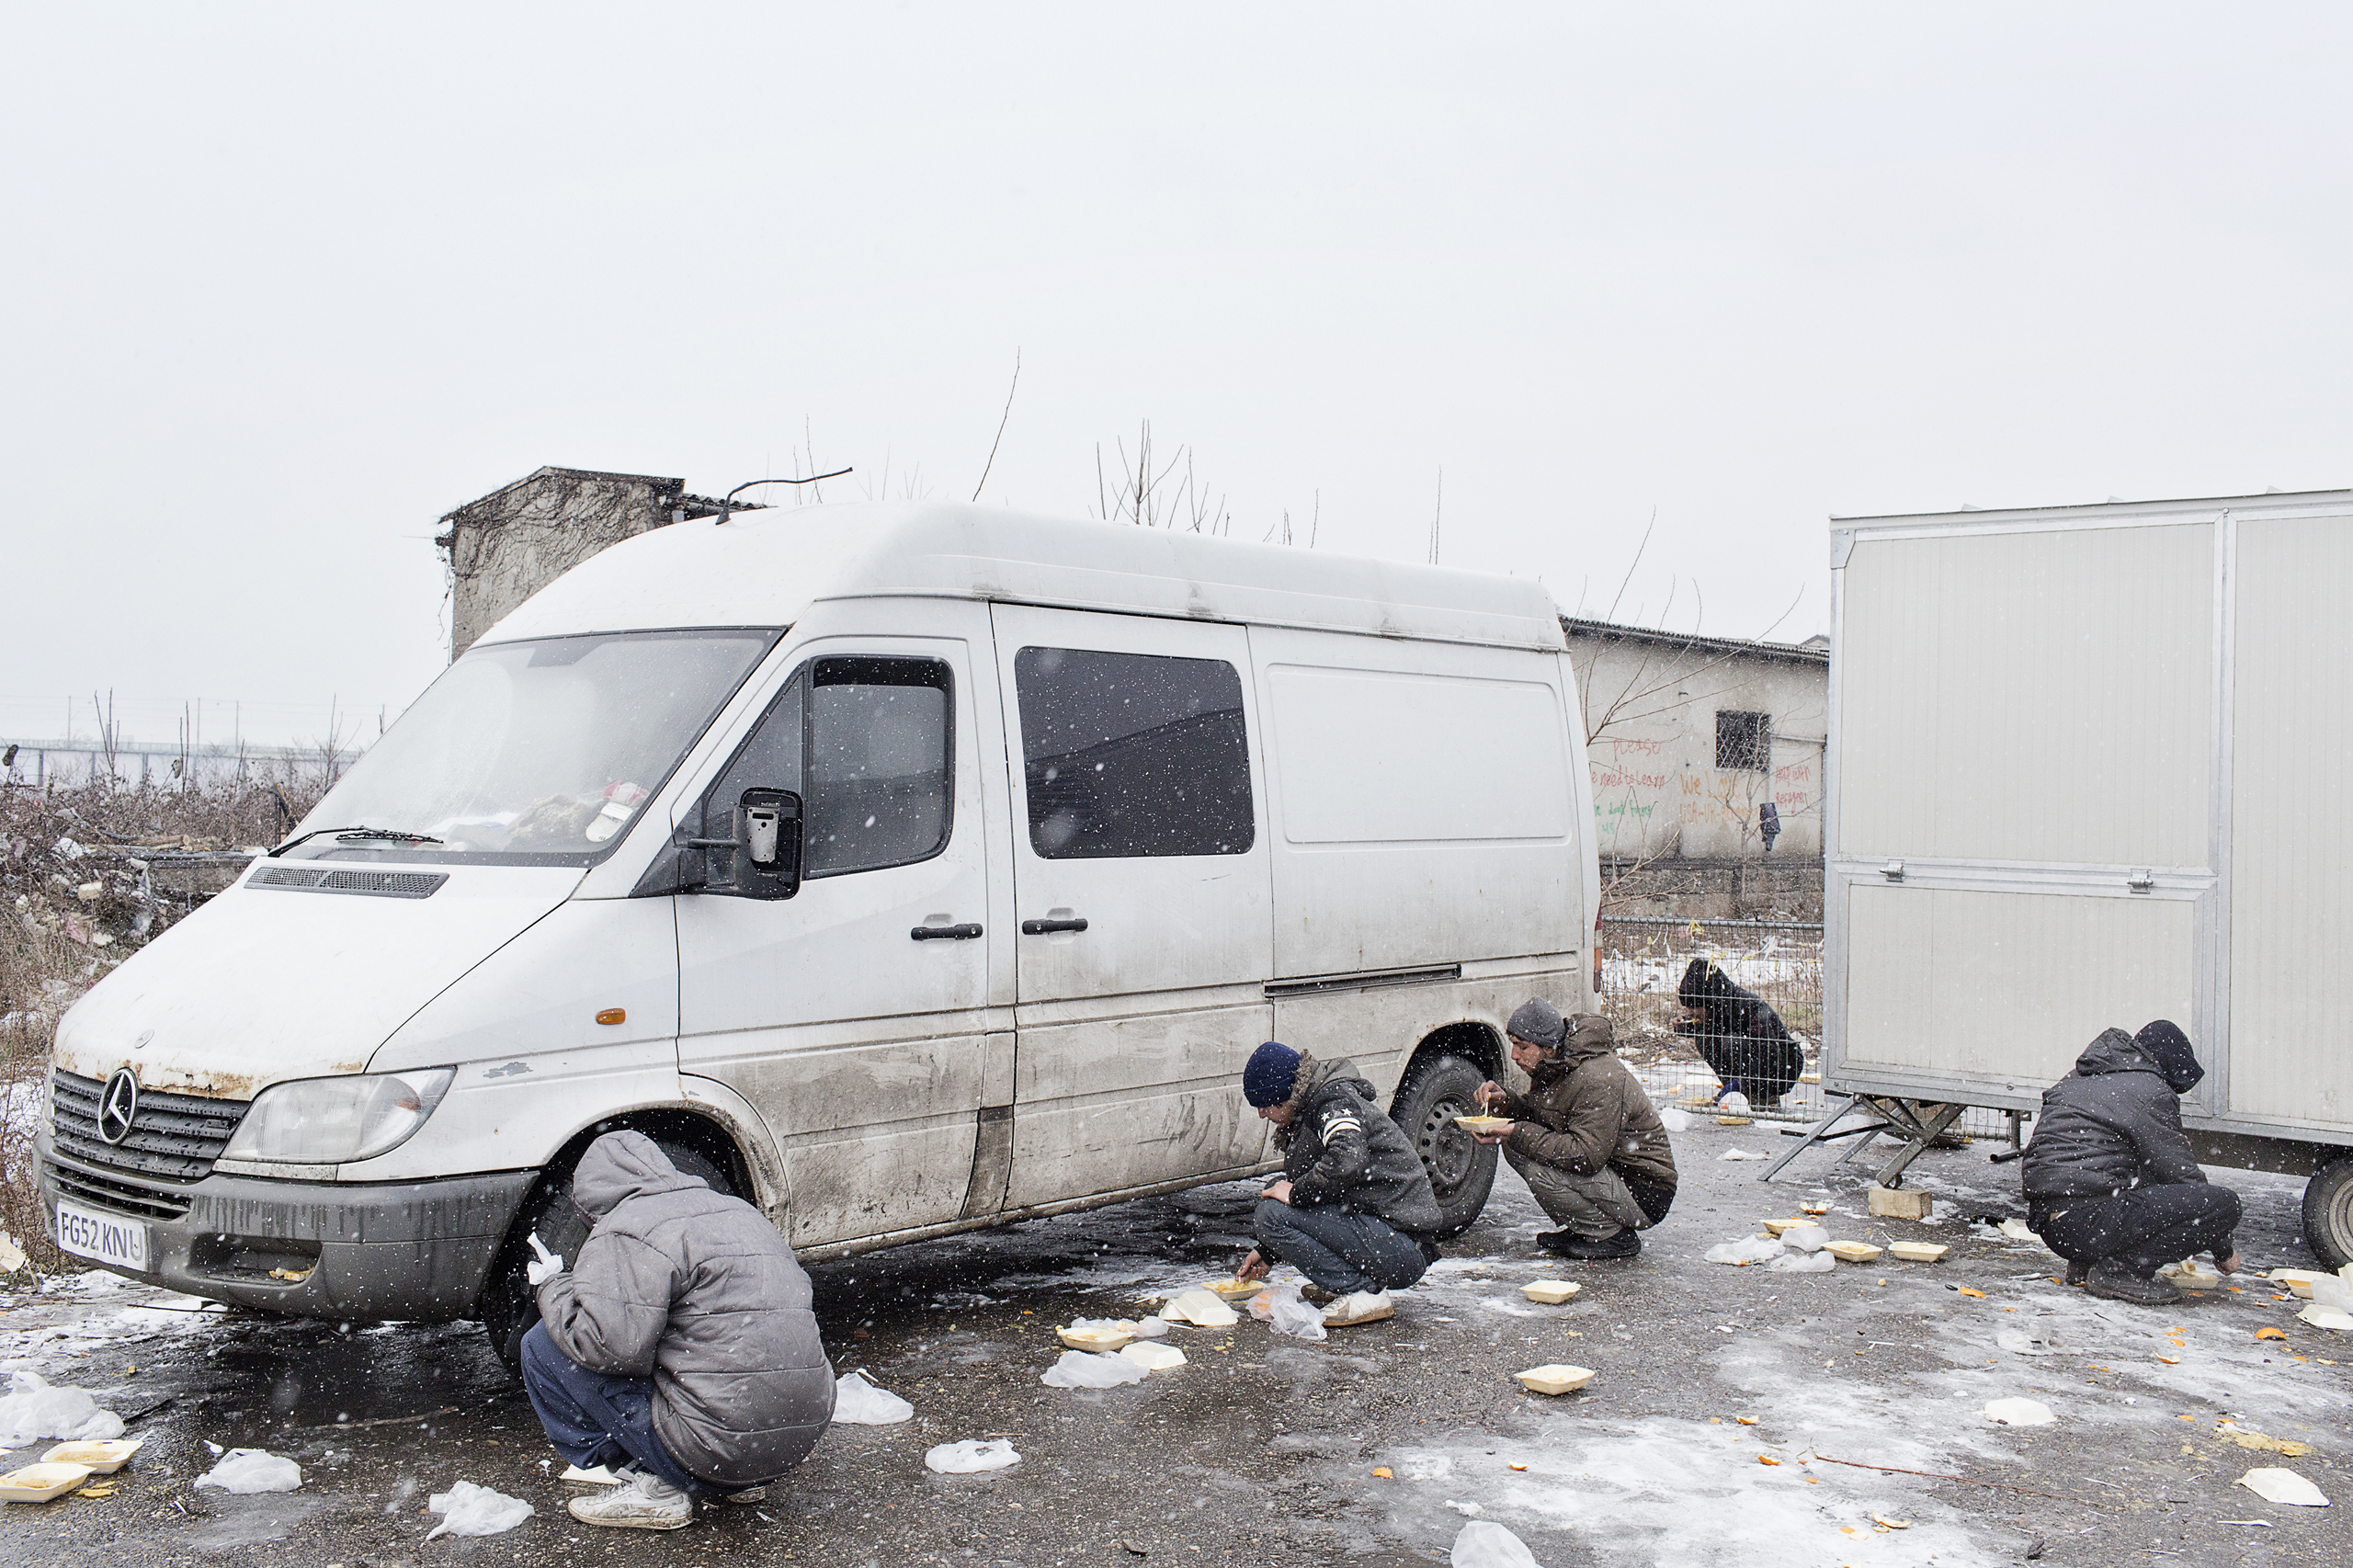 Migrants eat hot meals received from volunteers, outside of a derelict warehouse which they use as a makeshift shelter, Belgrade, Serbia,  Jan 17, 2017.